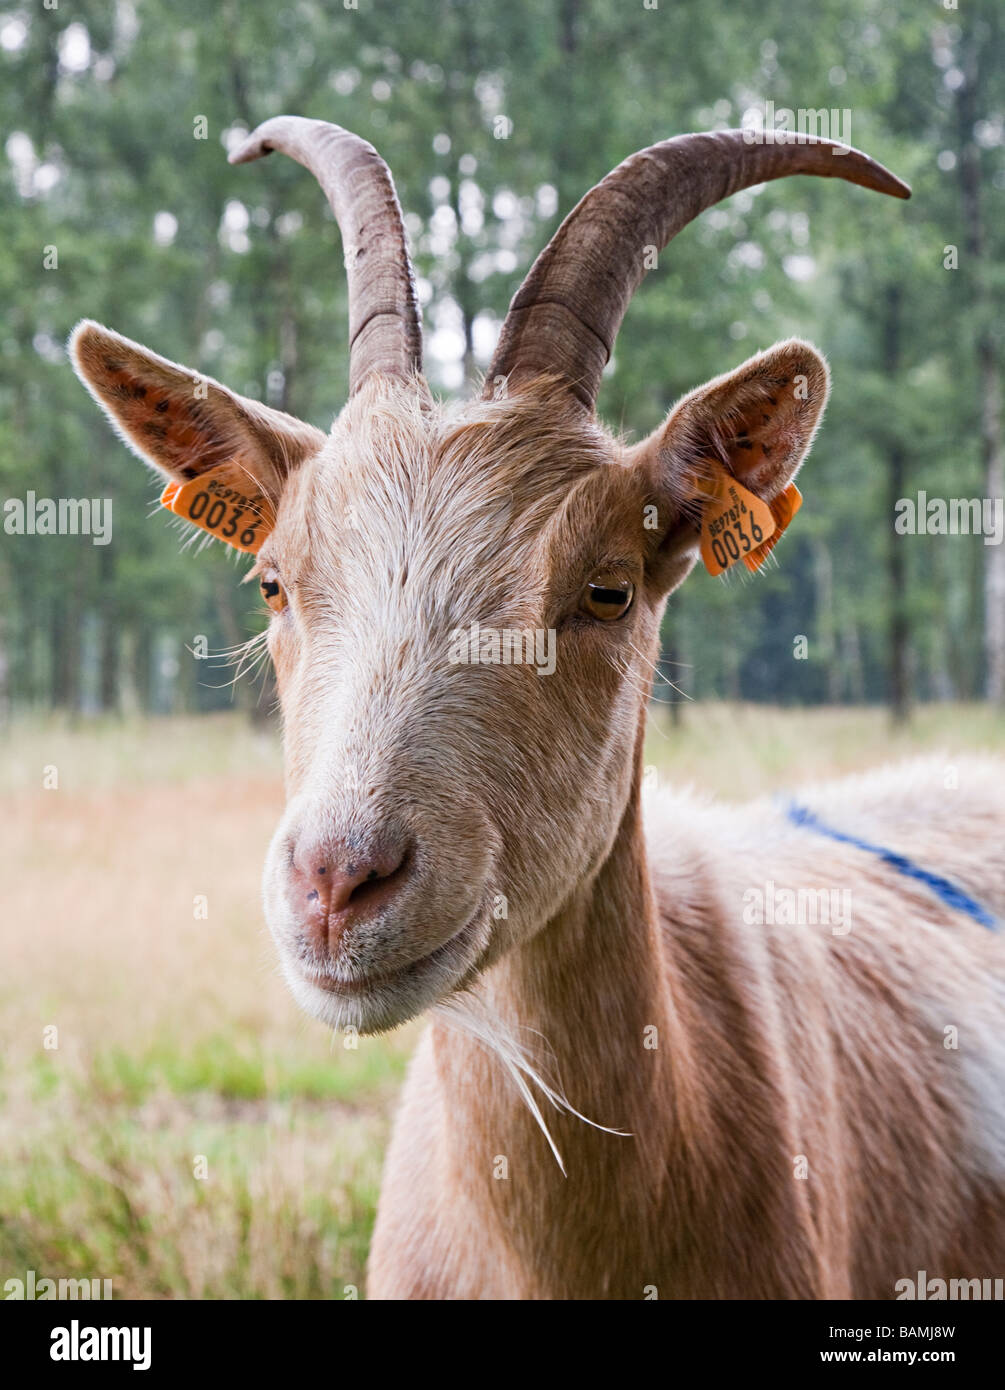 Goat with tags in ears Kalmthoutse Heide nature reserve Kalmthout Belgium - Stock Image